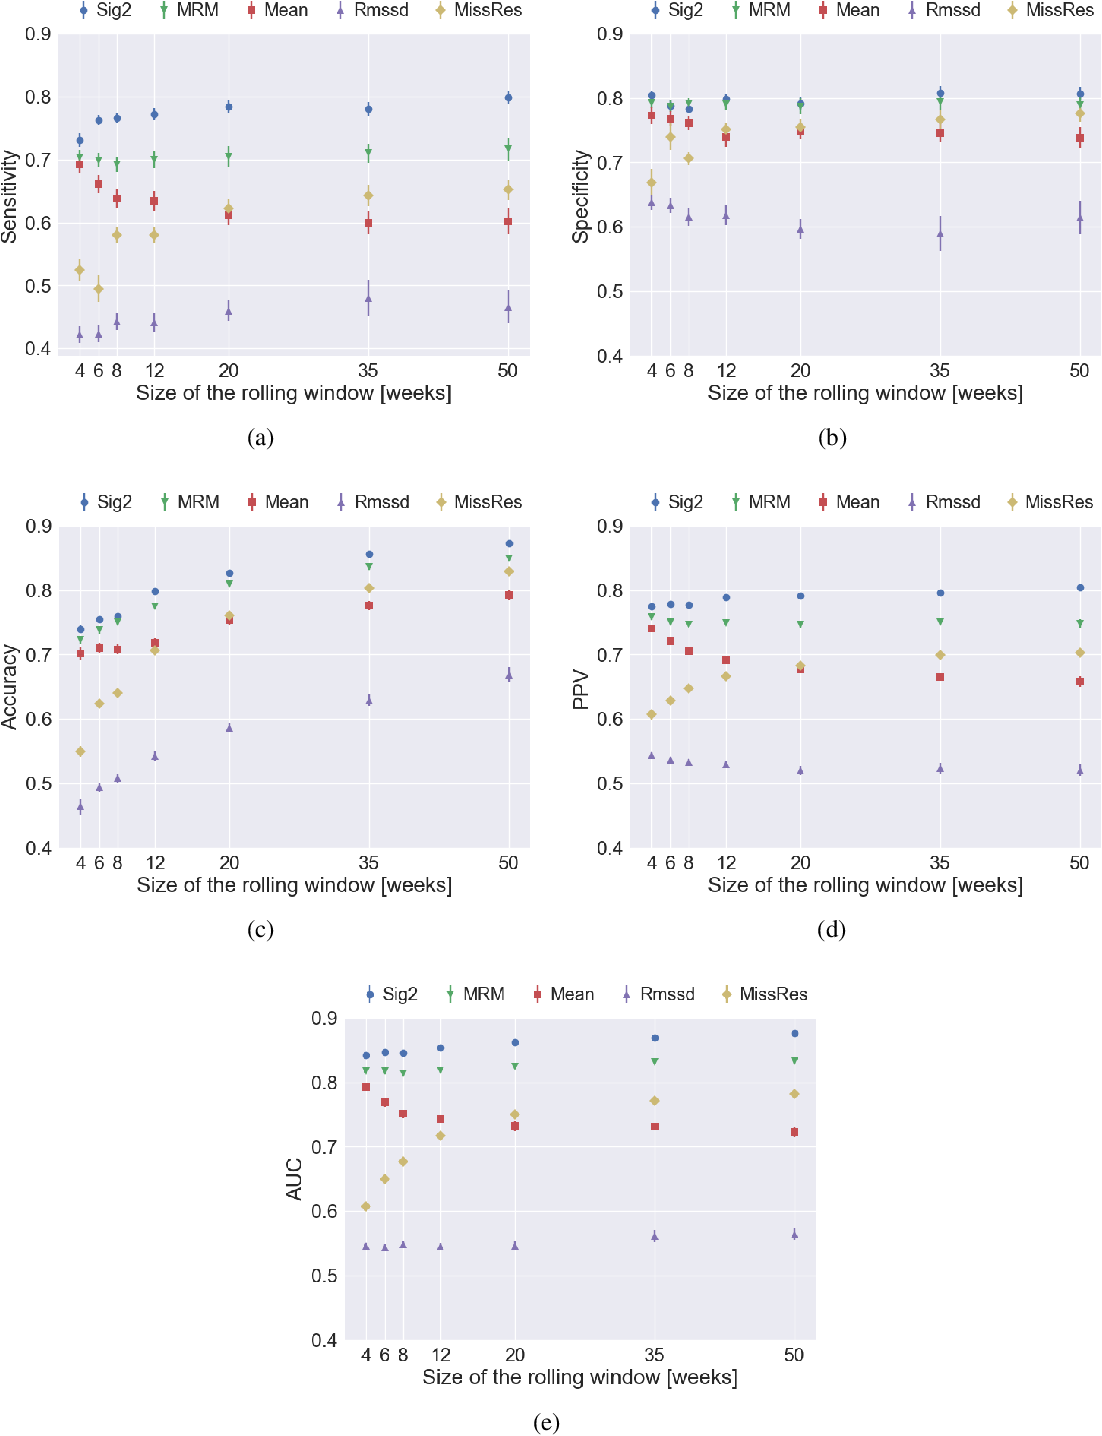 Figure 1 for Detecting early signs of depressive and manic episodes in patients with bipolar disorder using the signature-based model